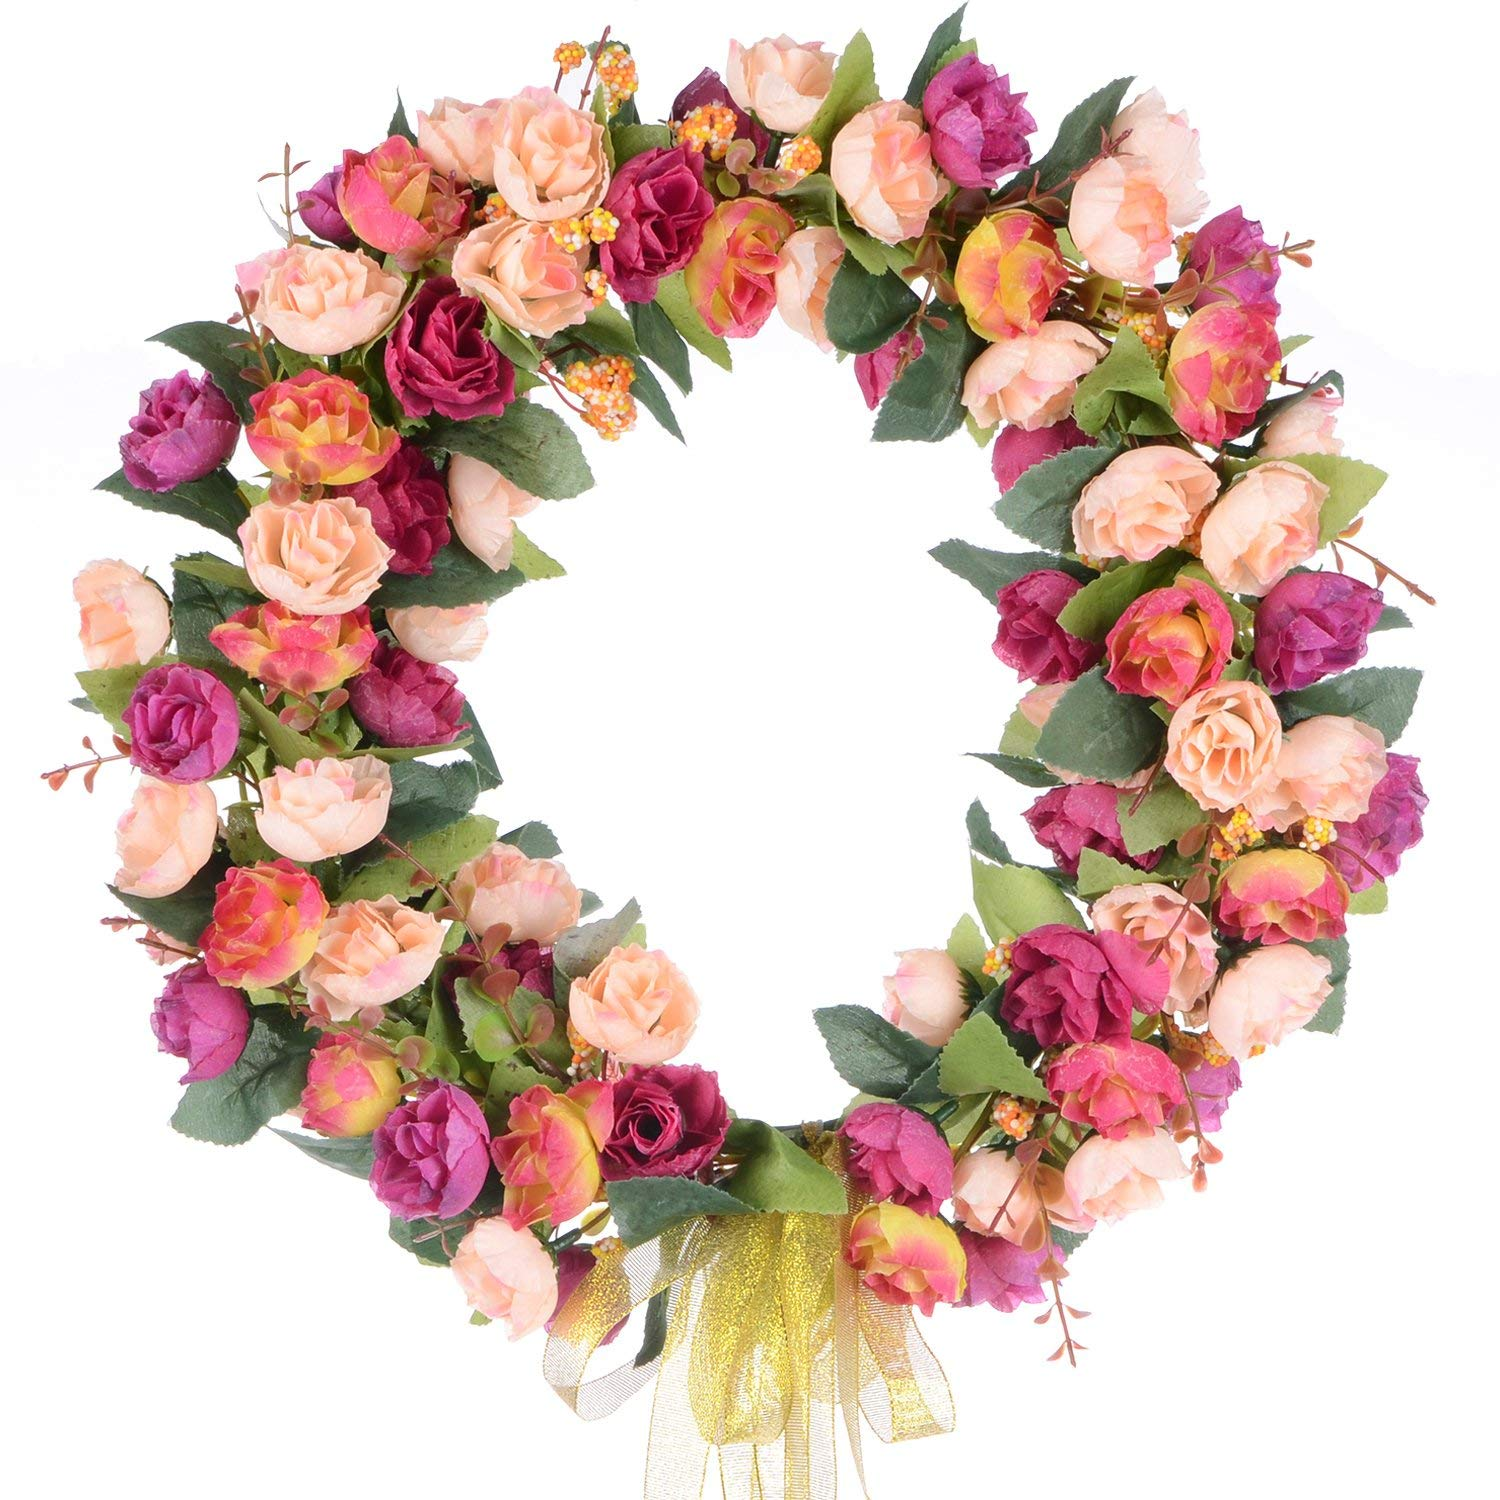 Coolmade Artificial Rose Flower Wreath, Door Wreath 14 Inch Fake Rose  Spring Wreath Nearly Natural Round Wreath For Front Door, Wall, Party, Home  ...